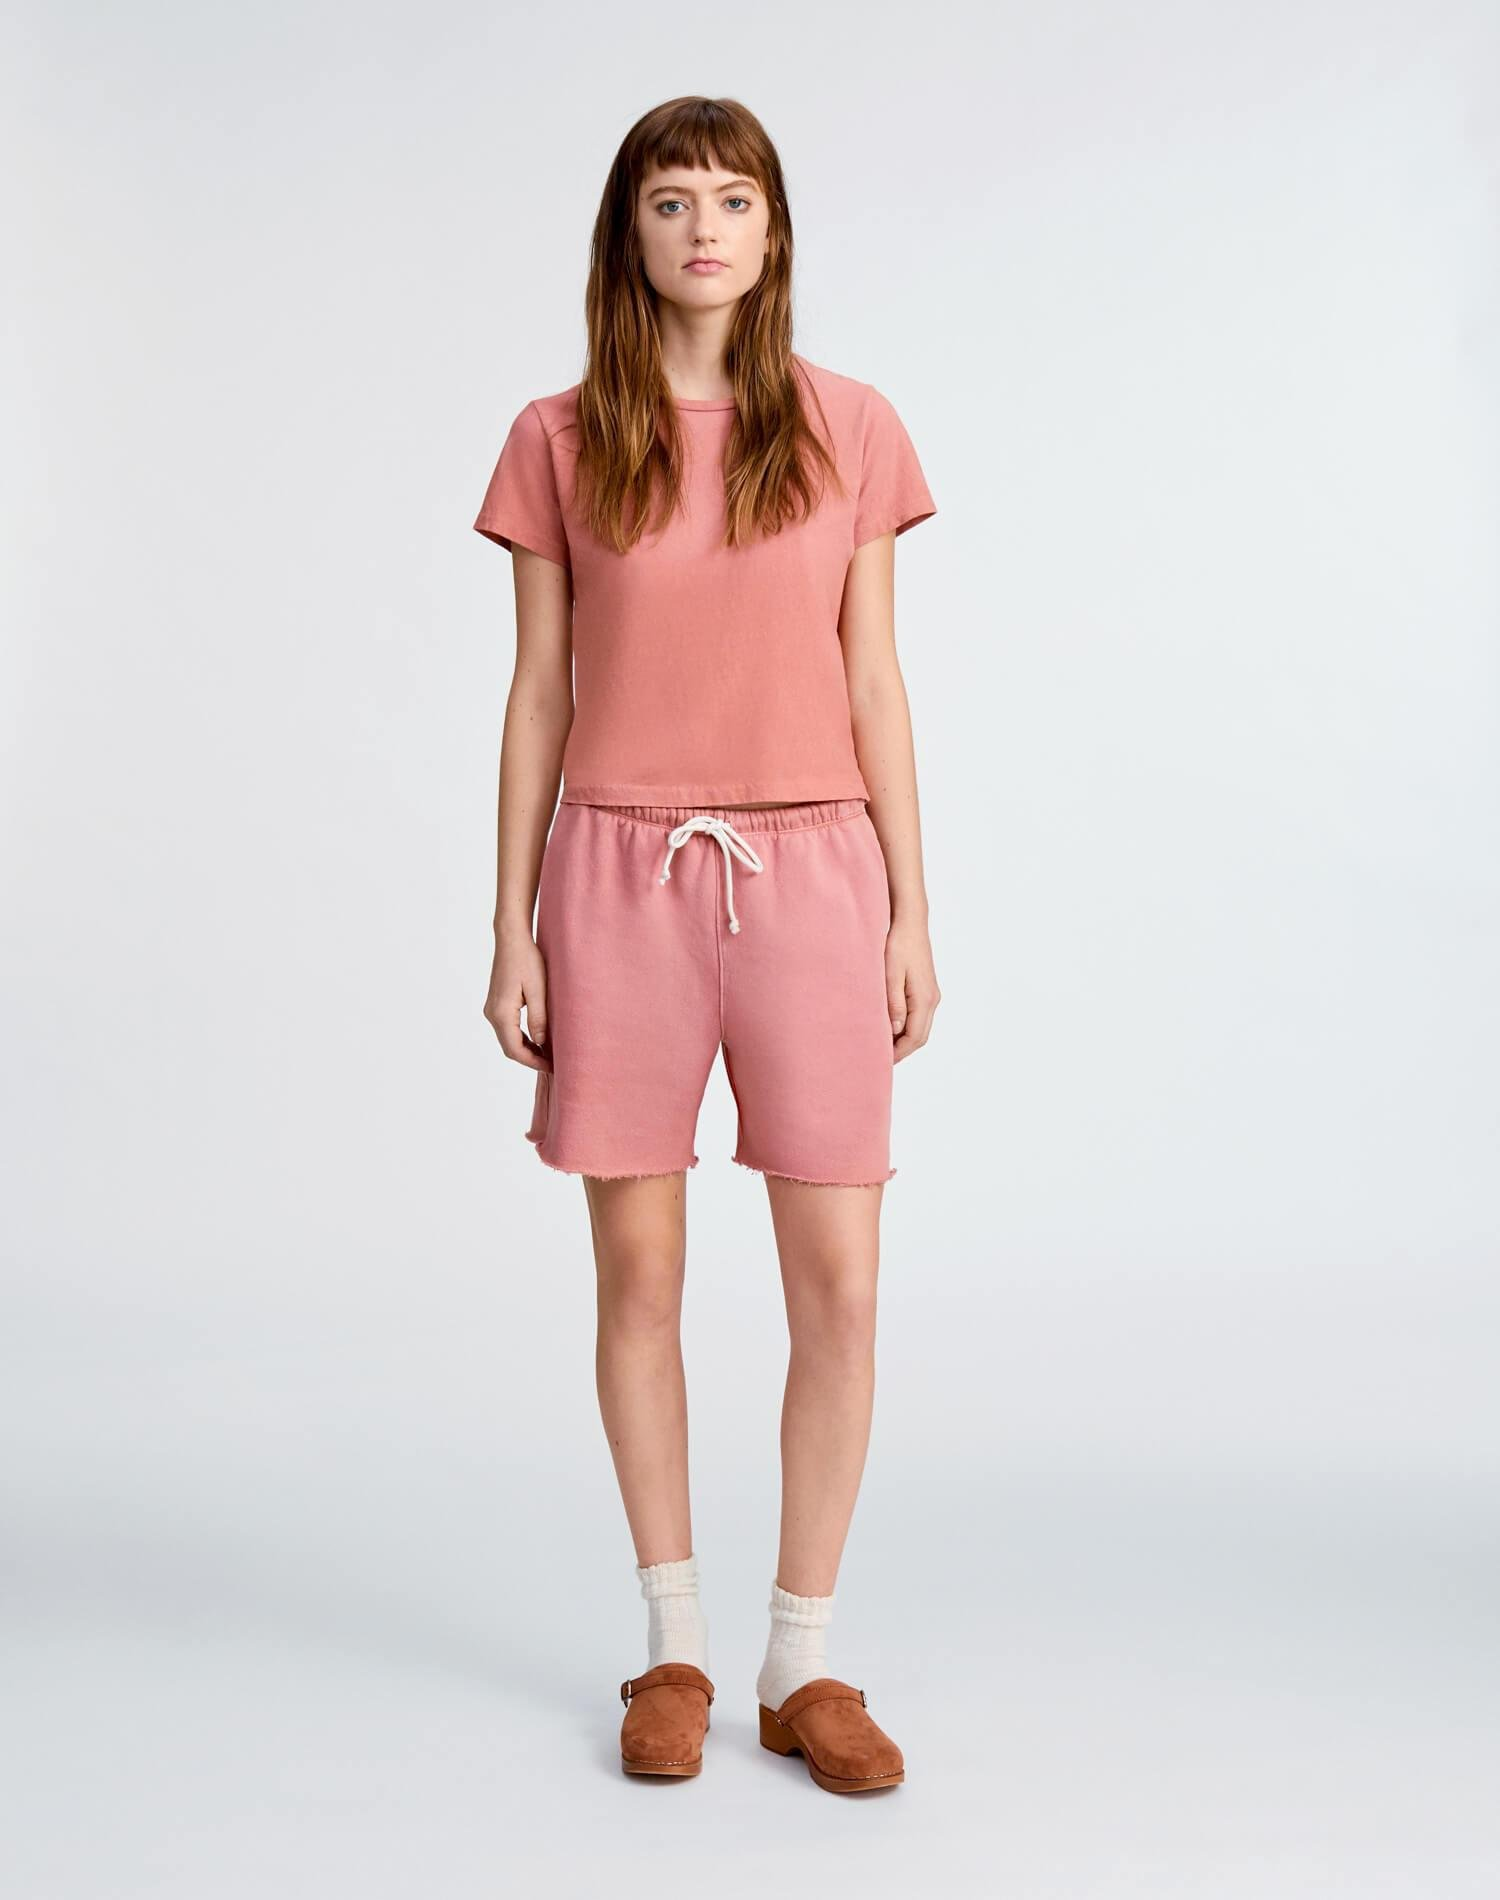 Heritage Cotton Classic Tee - Faded Clay 1